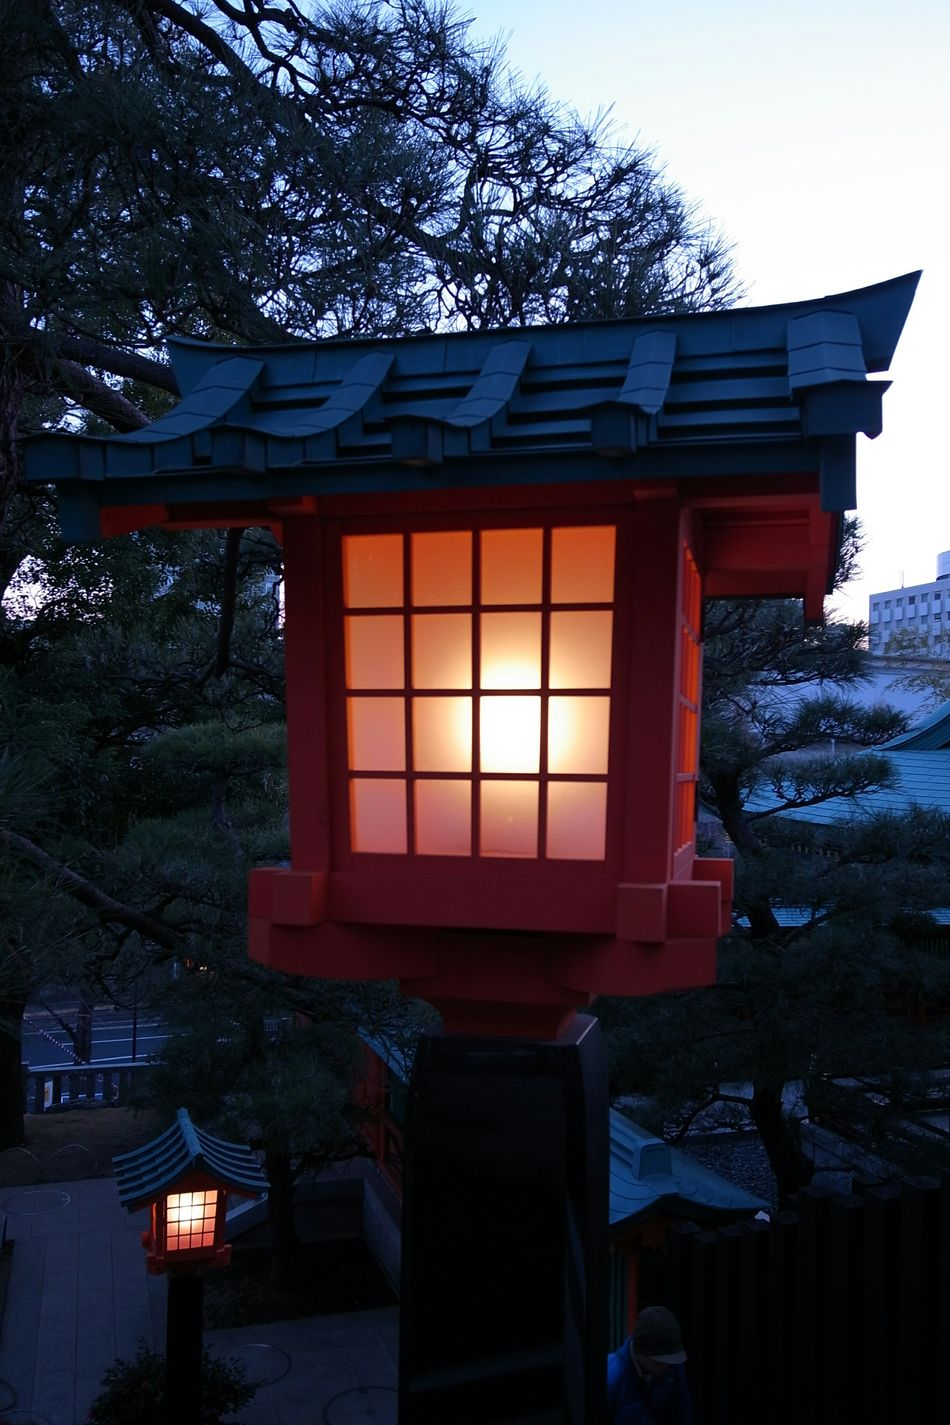 Shrine Light And Shadow Nightlights Night View Street Lamps New Year Traditional Winter Cold Day Ricoh GRD III 綺麗でした